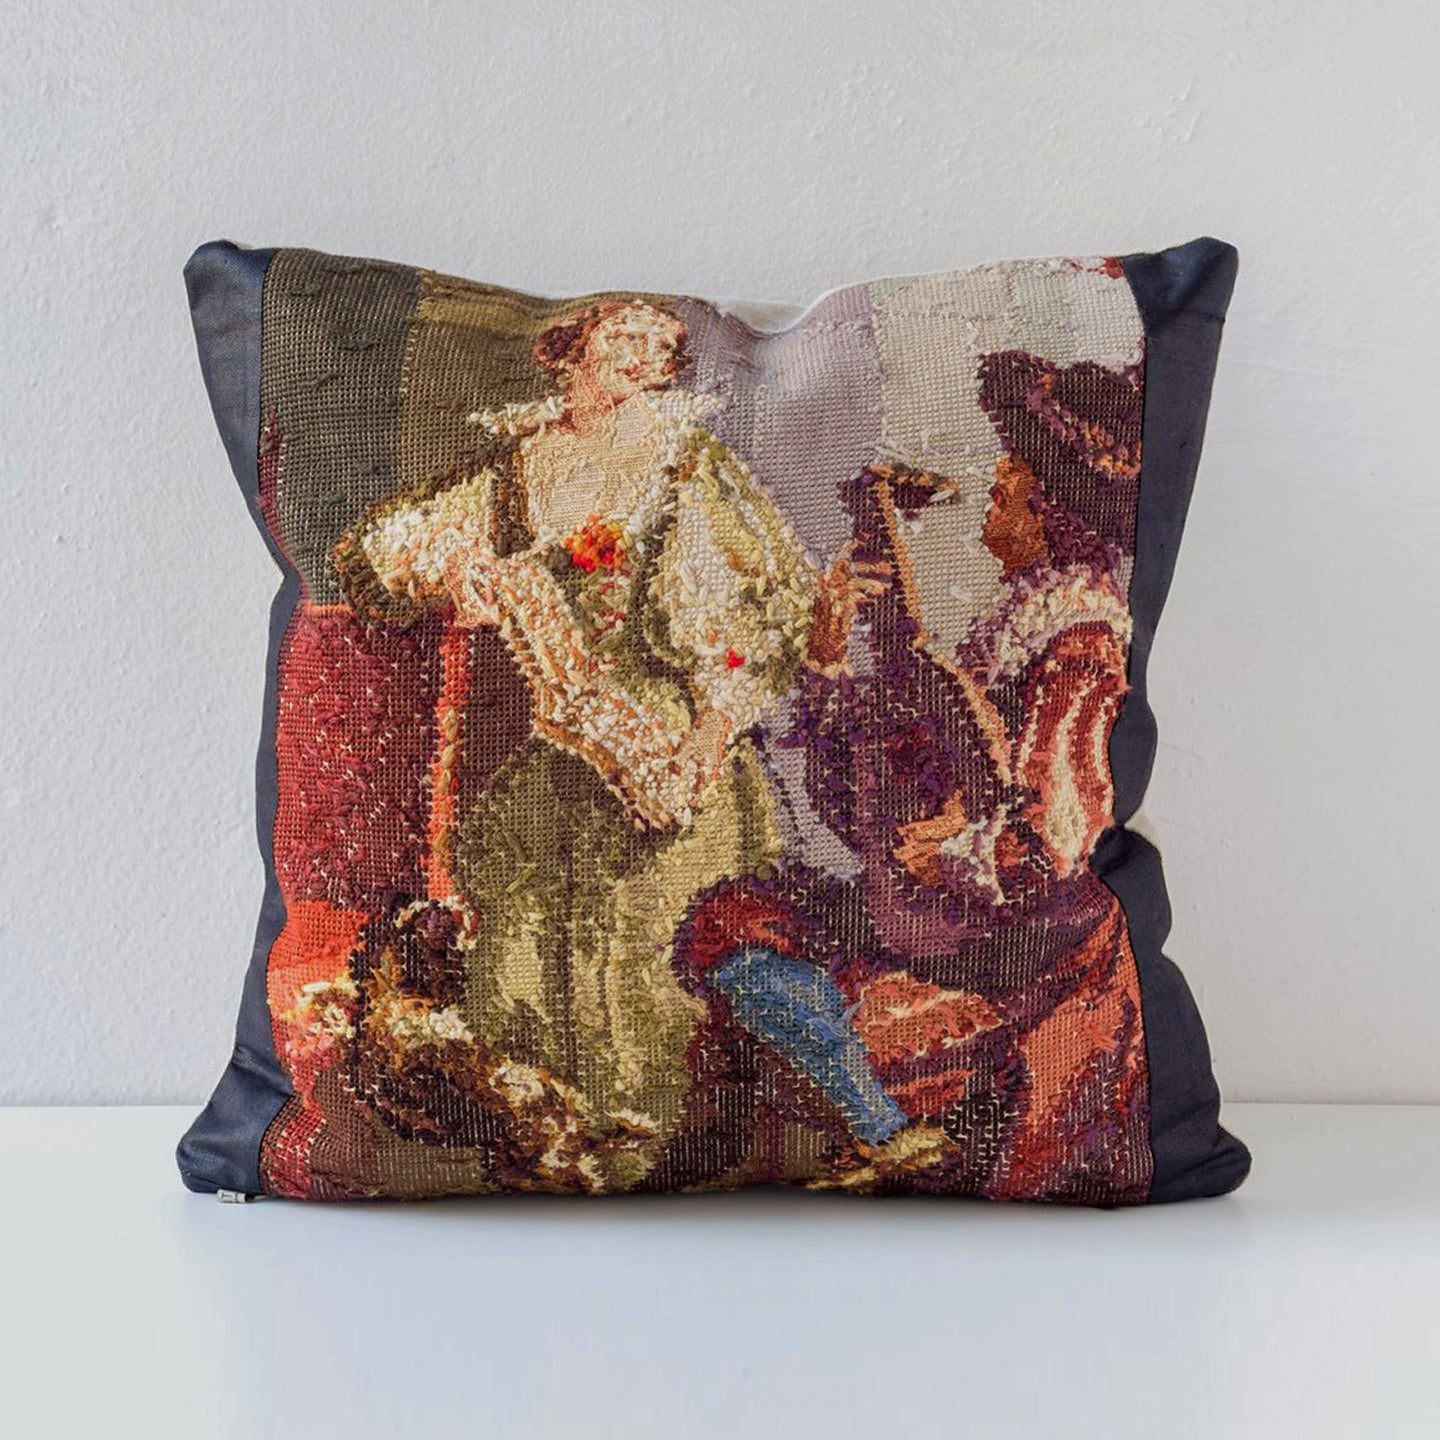 Needlepoint Collection Pillow - Musical Scene in Browns and Bronze